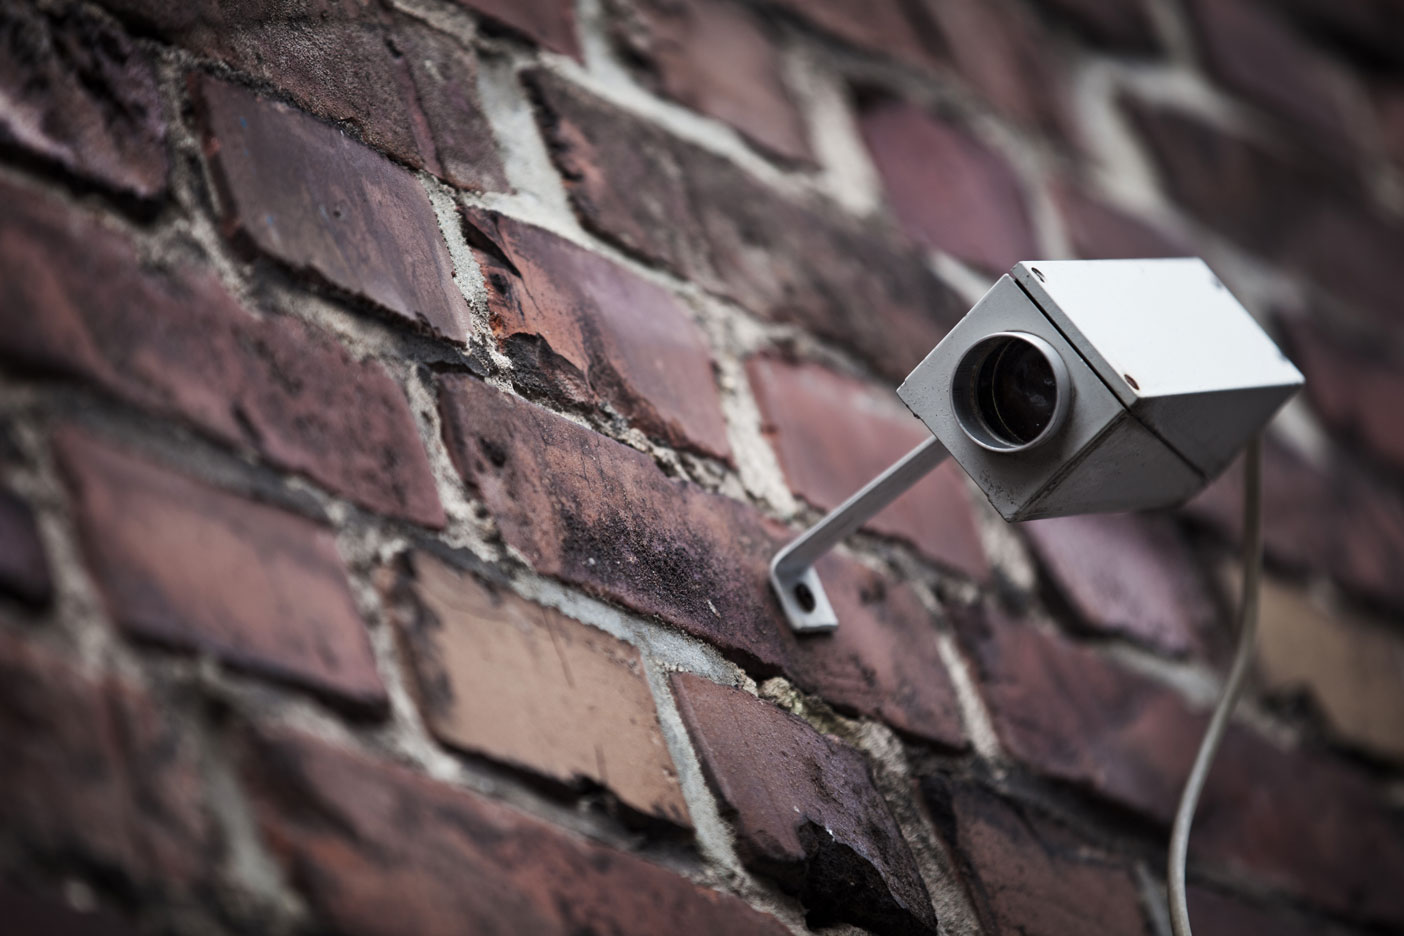 Even if Section 702 expires, White House says warrantless surveillance is fine for a while